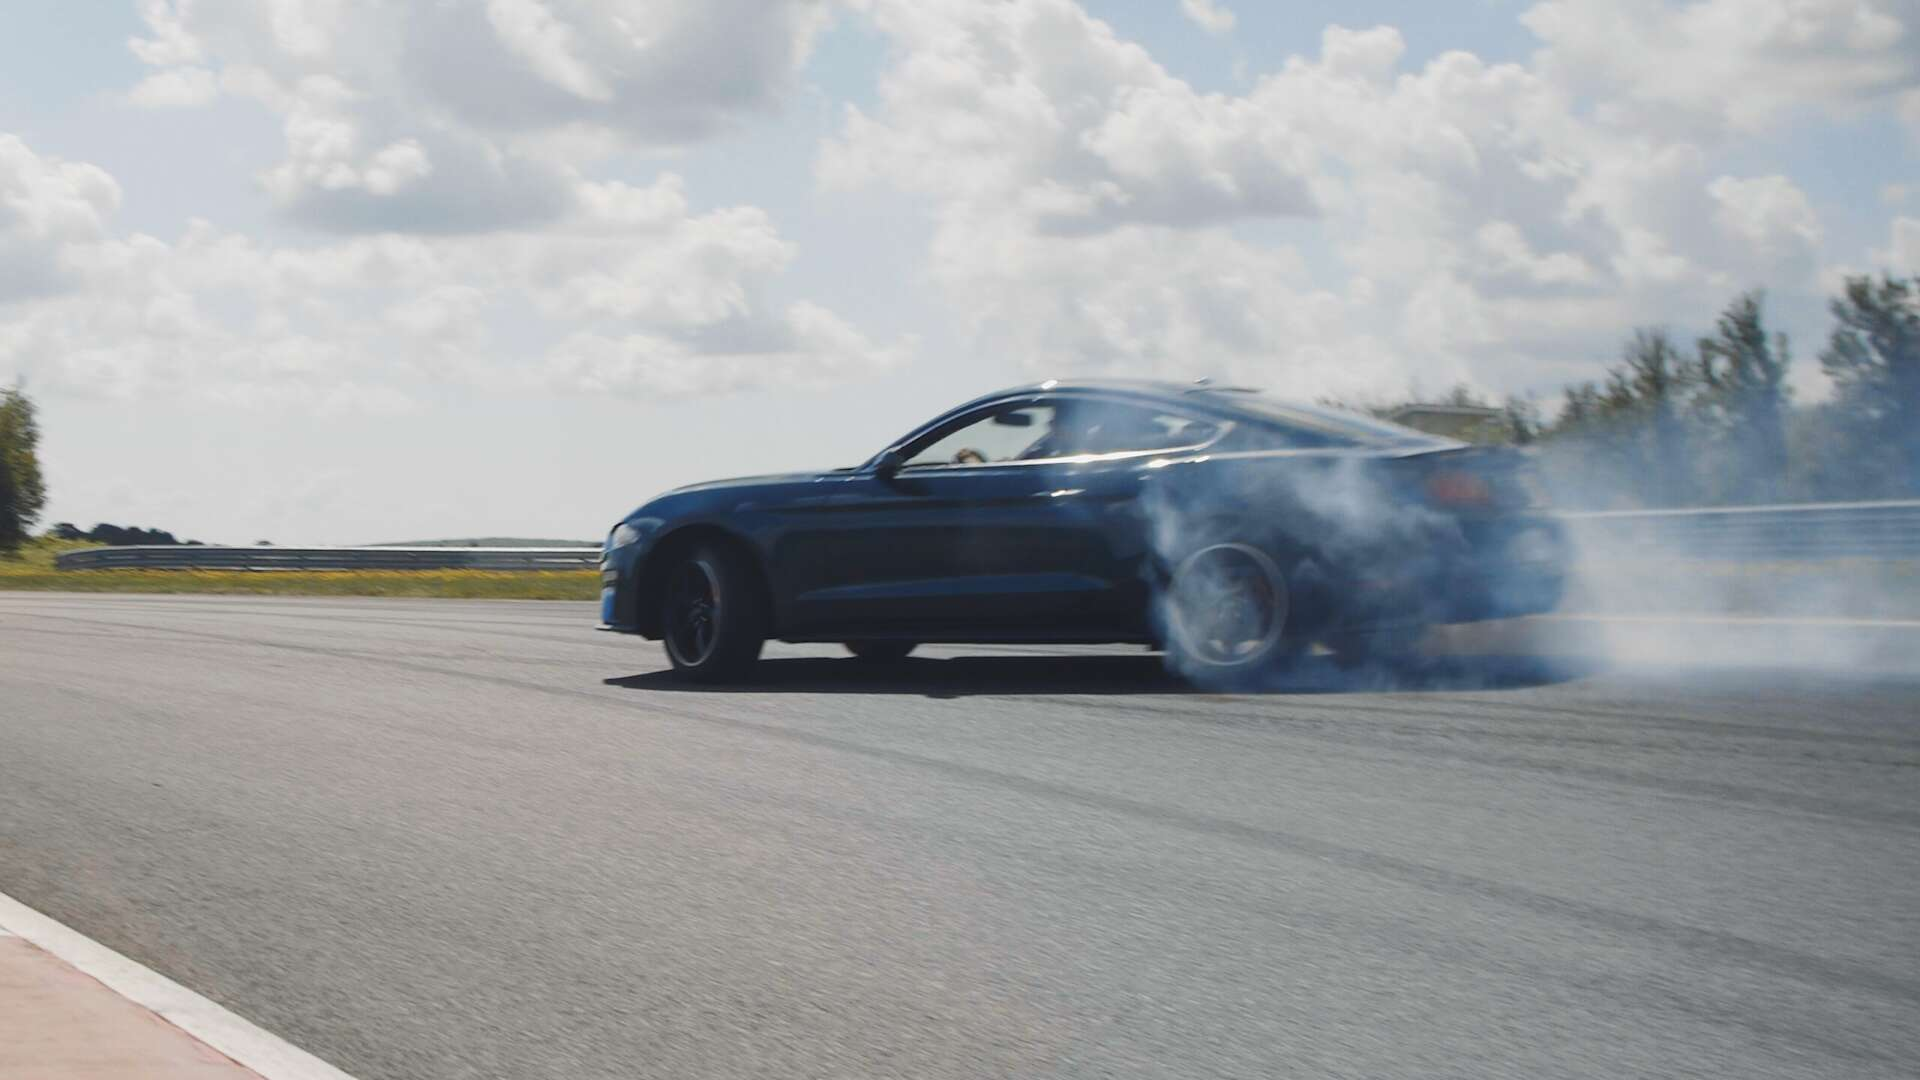 2019 Ford Mustang Bullitt Track Test Review Mcqueen Fan Or No A Go Back Gt Gallery For Electrical Circuit Symbols Chris Szczypala